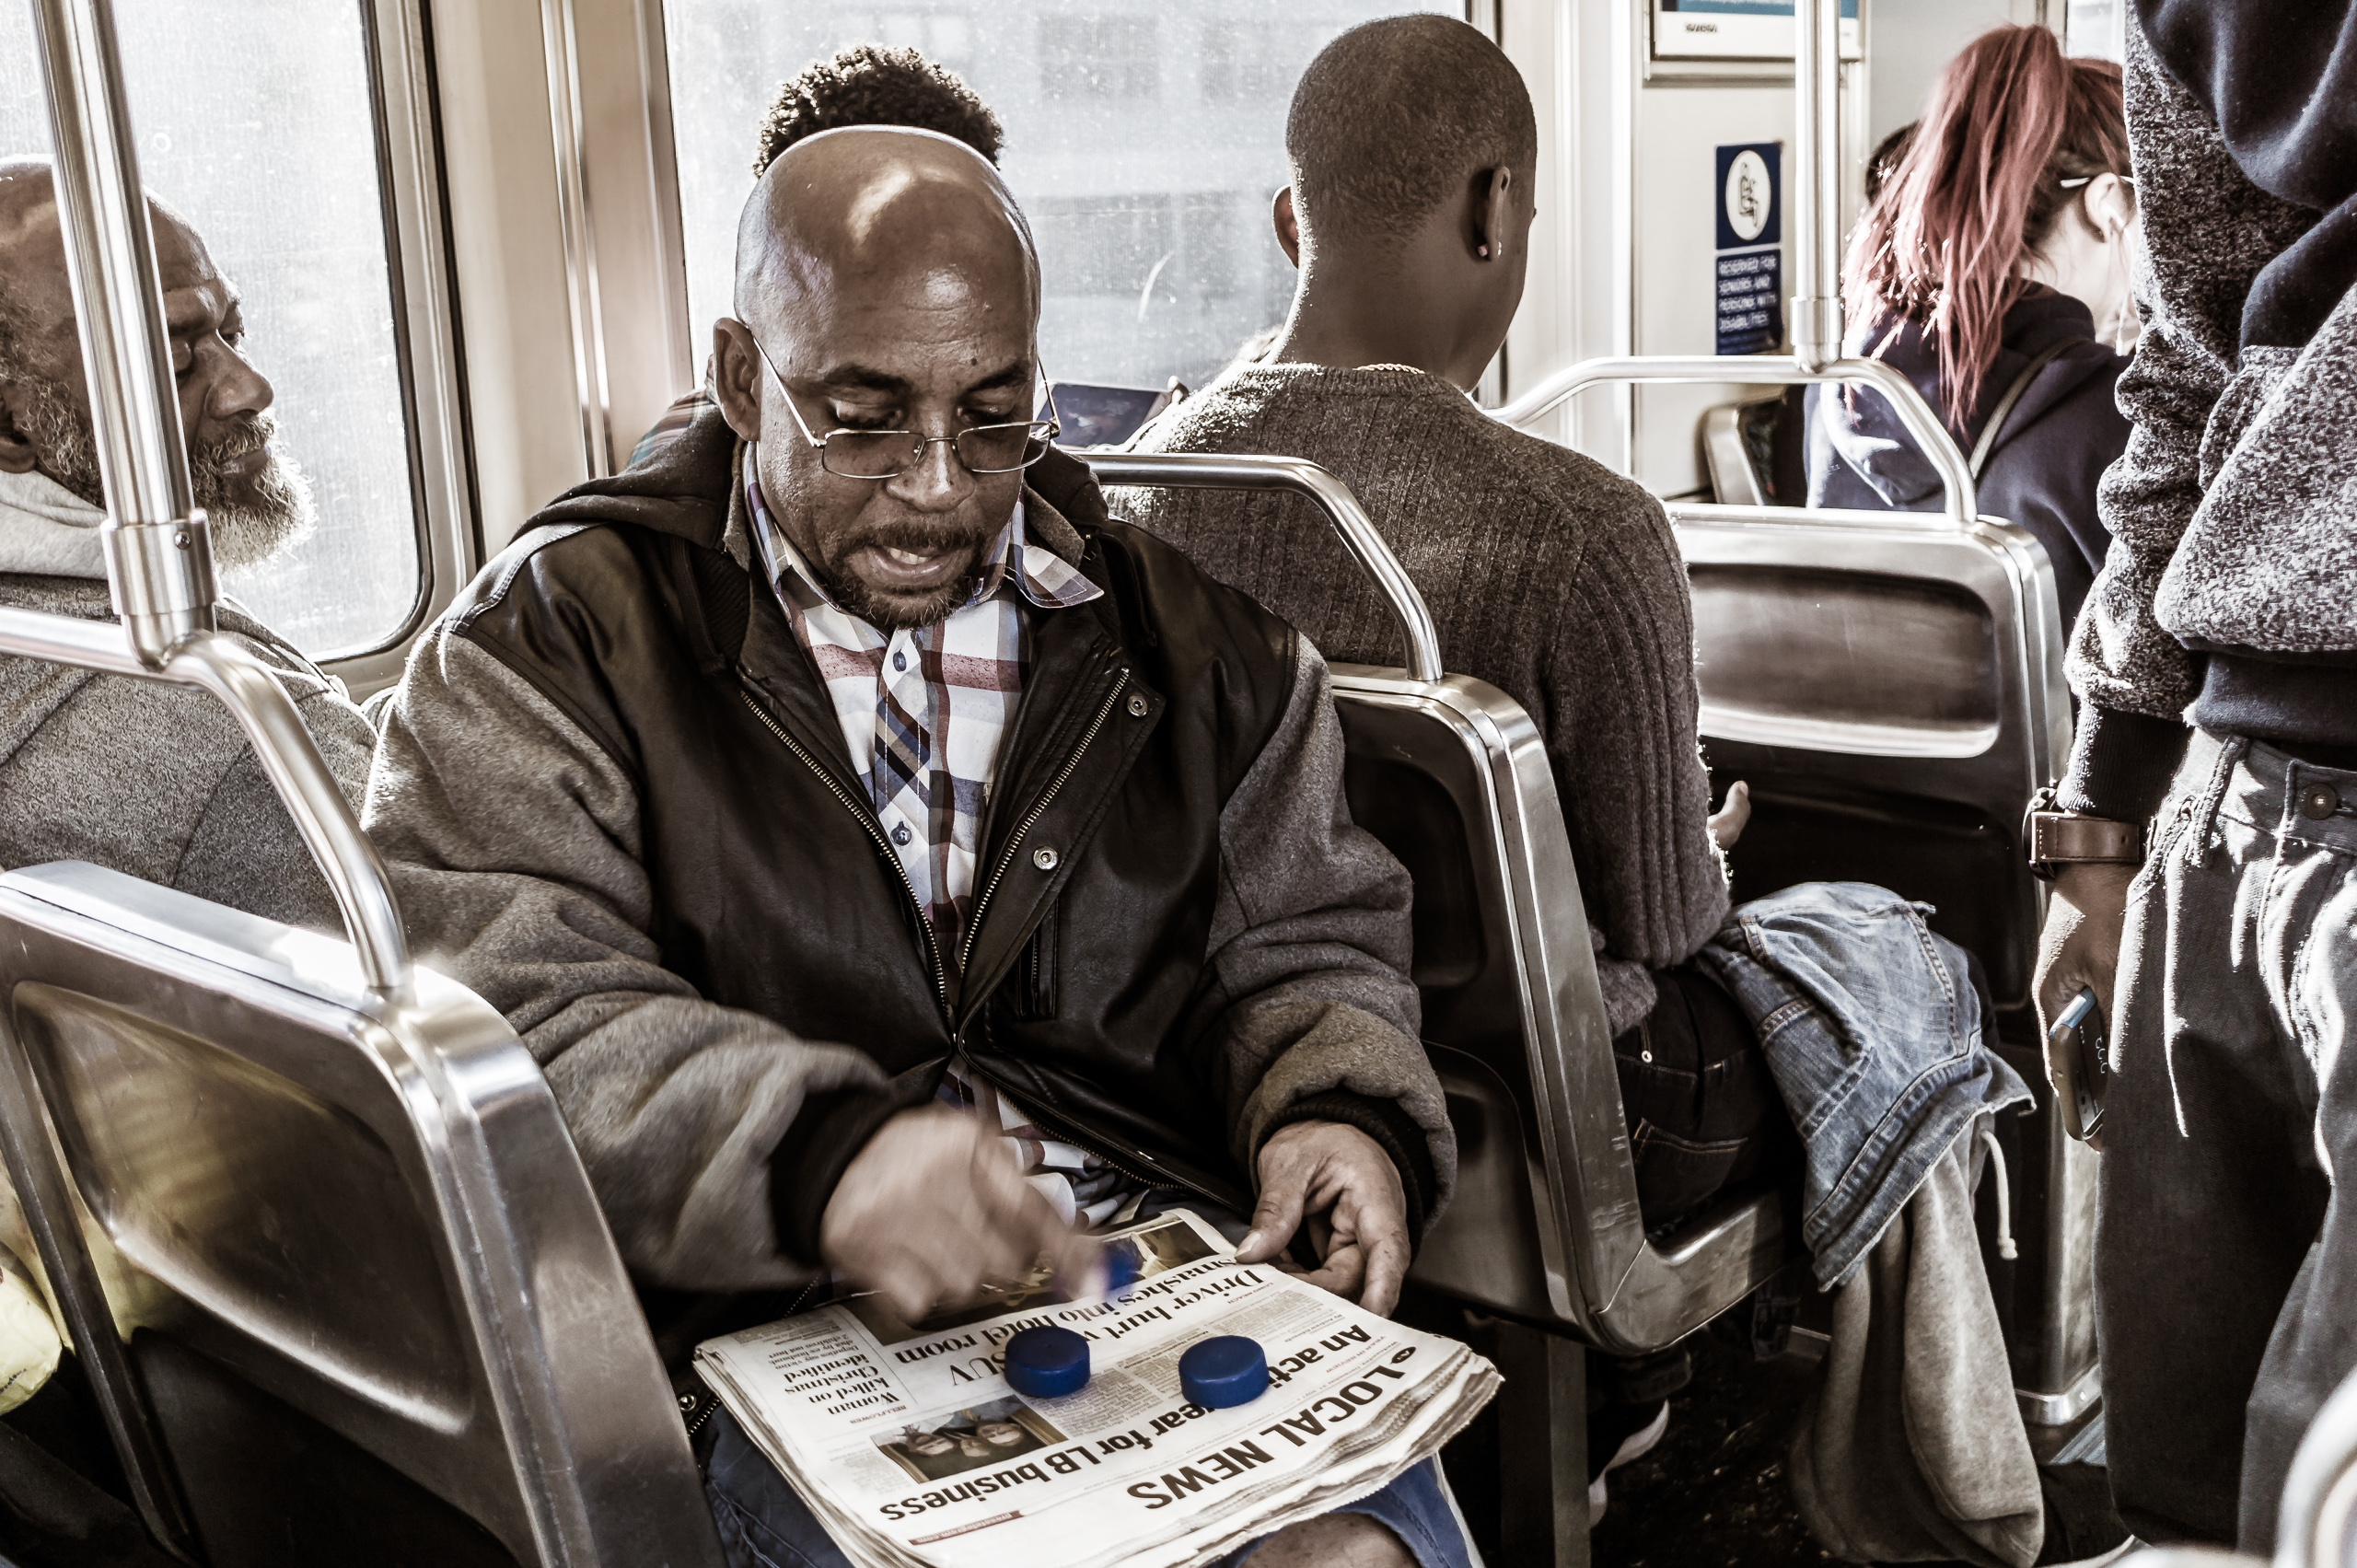 a Metro rider plays a shell game with bottle caps